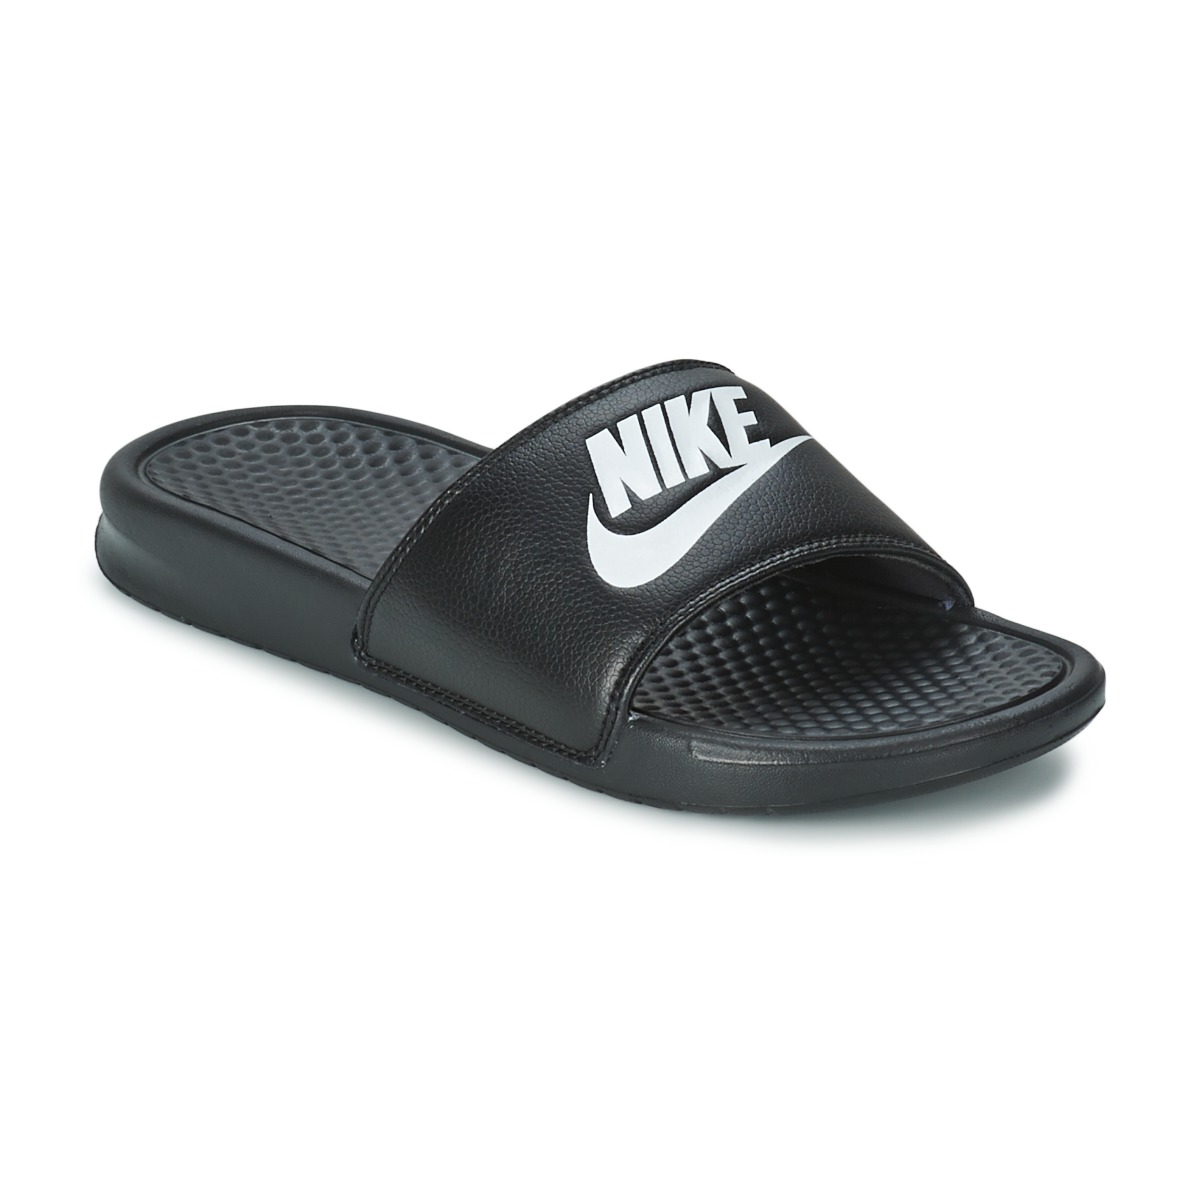 mules nike benassi just do it noir livraison gratuite avec chaussures homme 24. Black Bedroom Furniture Sets. Home Design Ideas